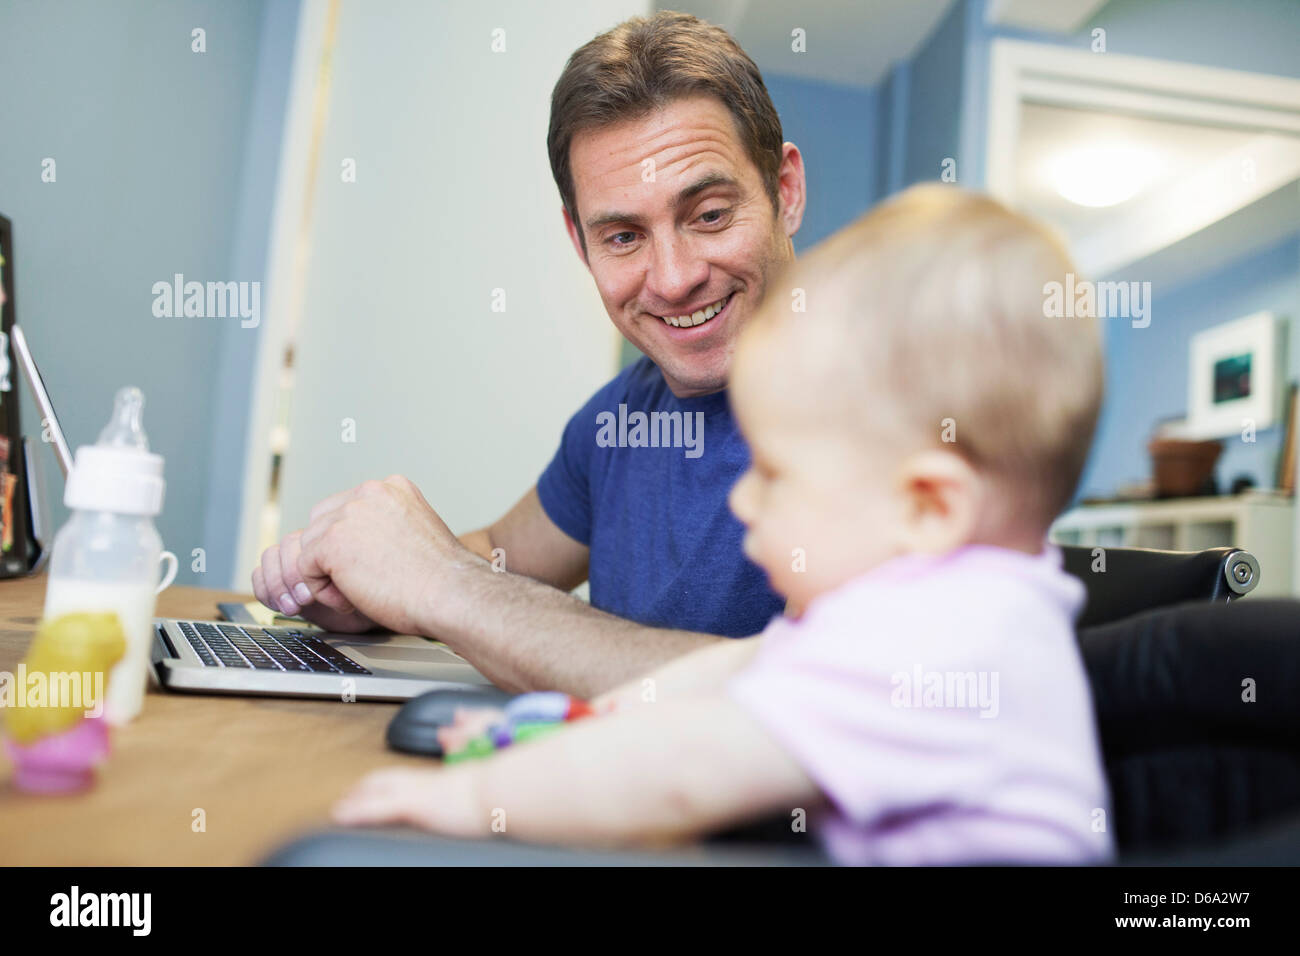 Baby girl sitting with father at work - Stock Image